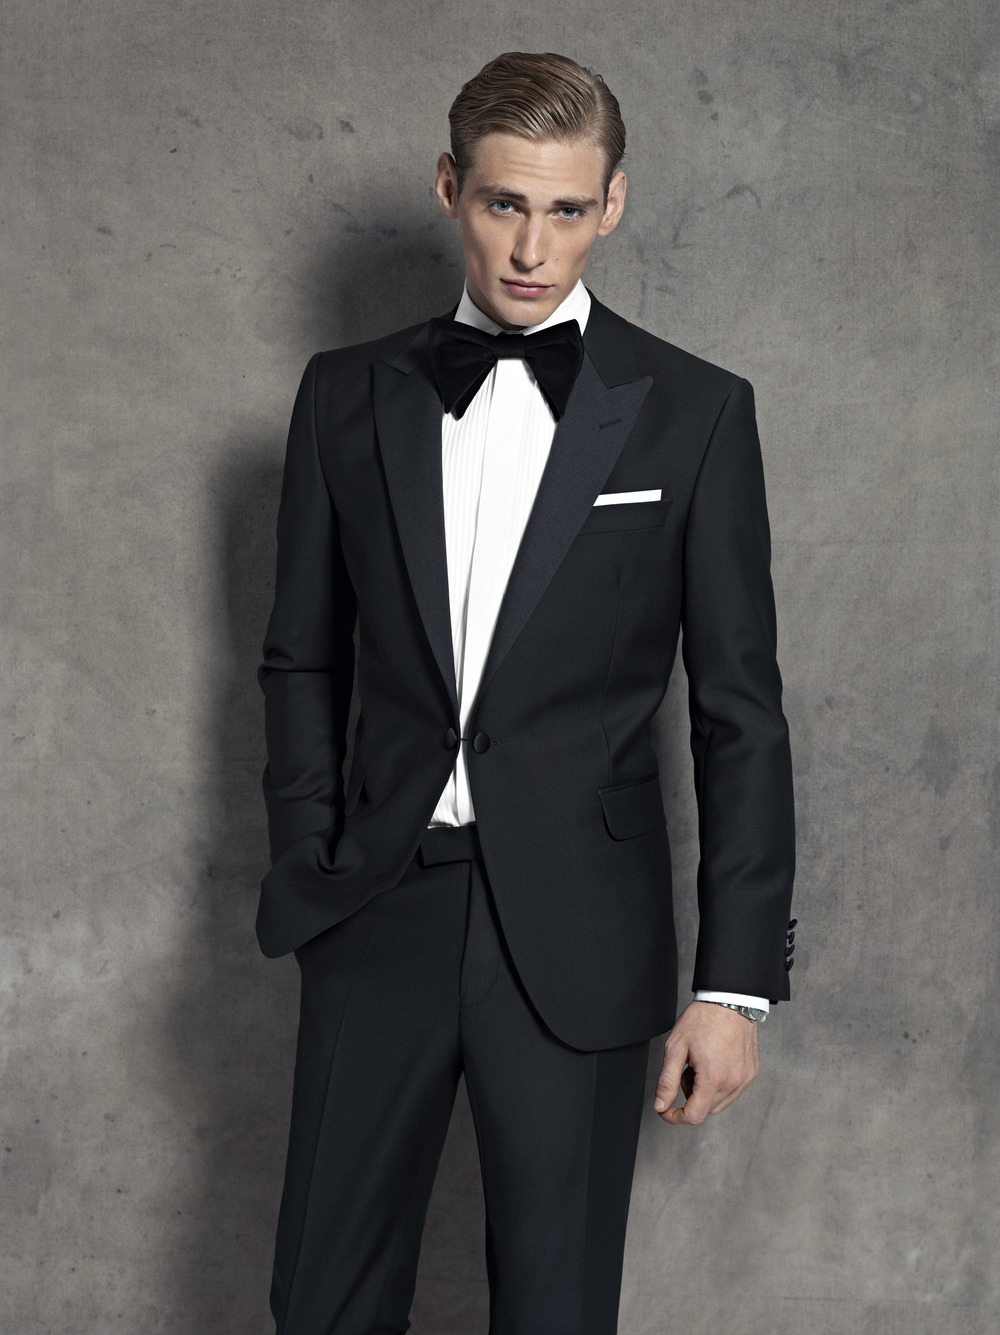 evening and dinner suits for hire or buy in Bracknell, Maidenhead, Reading, Basingstoke, Slough, Windsor, Staines, Ascot, High Wycombe, Camberley, Woking, Guildford, Henley On Thames, Marlow, Newbury, Berkshire, Hampshire, Surrey, Buckinghamshire.